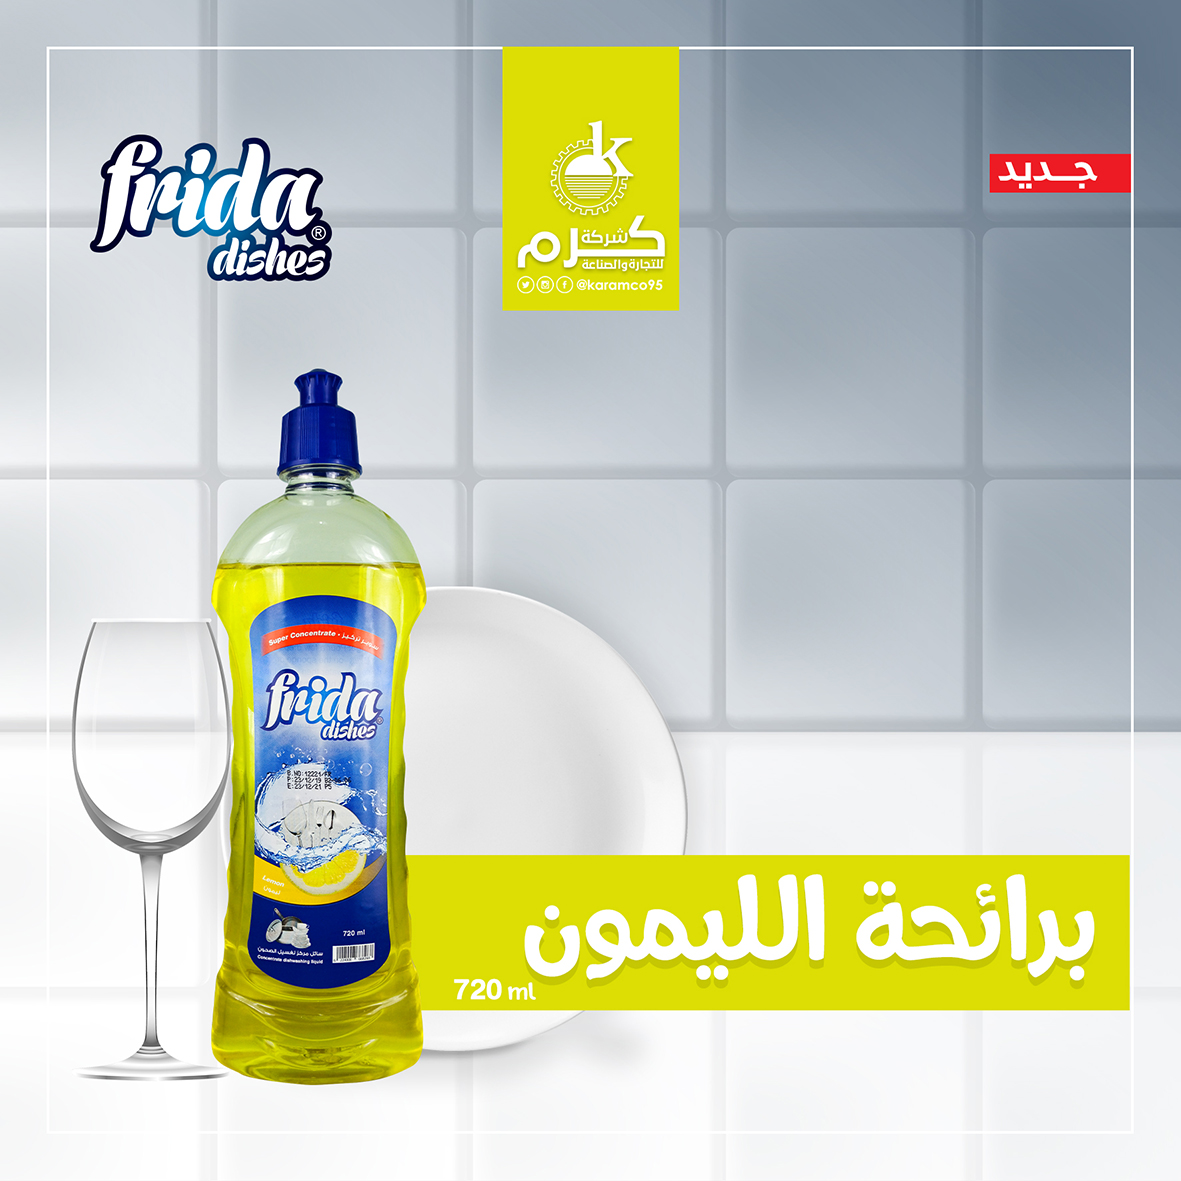 Frida Dishes (Lemon Smell) 720 Ml